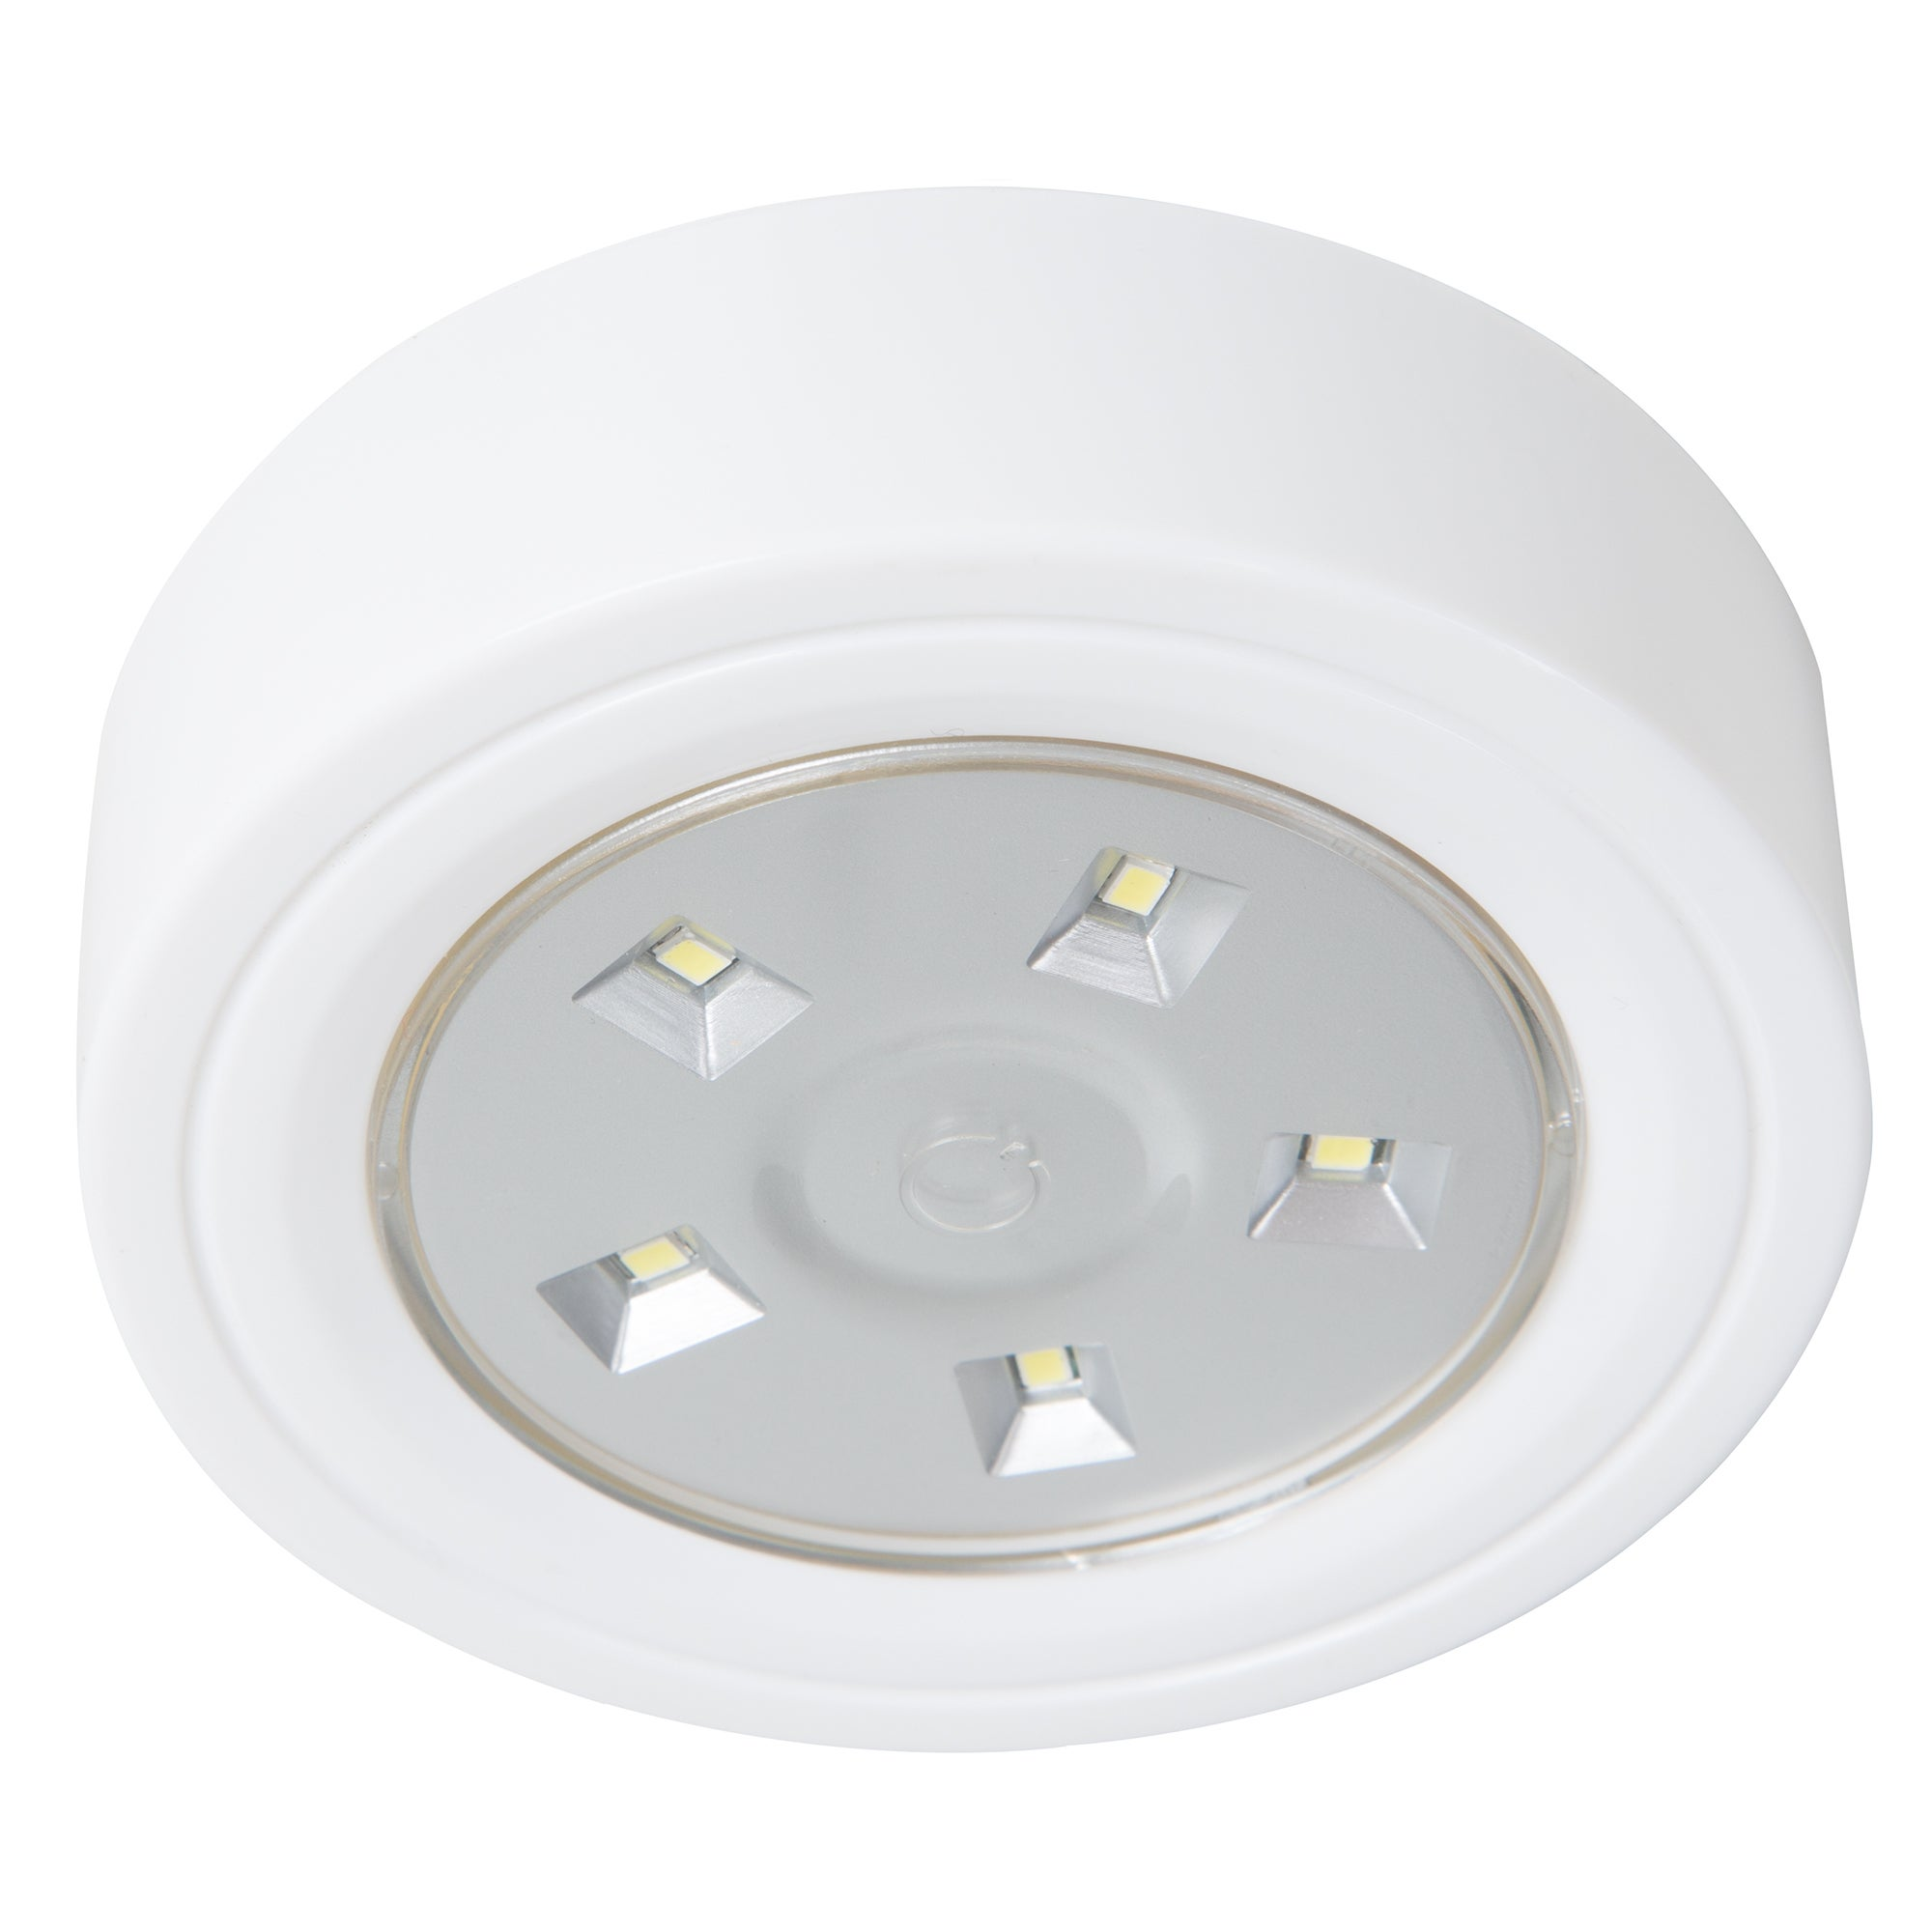 Lavish Home 5 LED Portable Puck and Ceiling Light with Remote ...